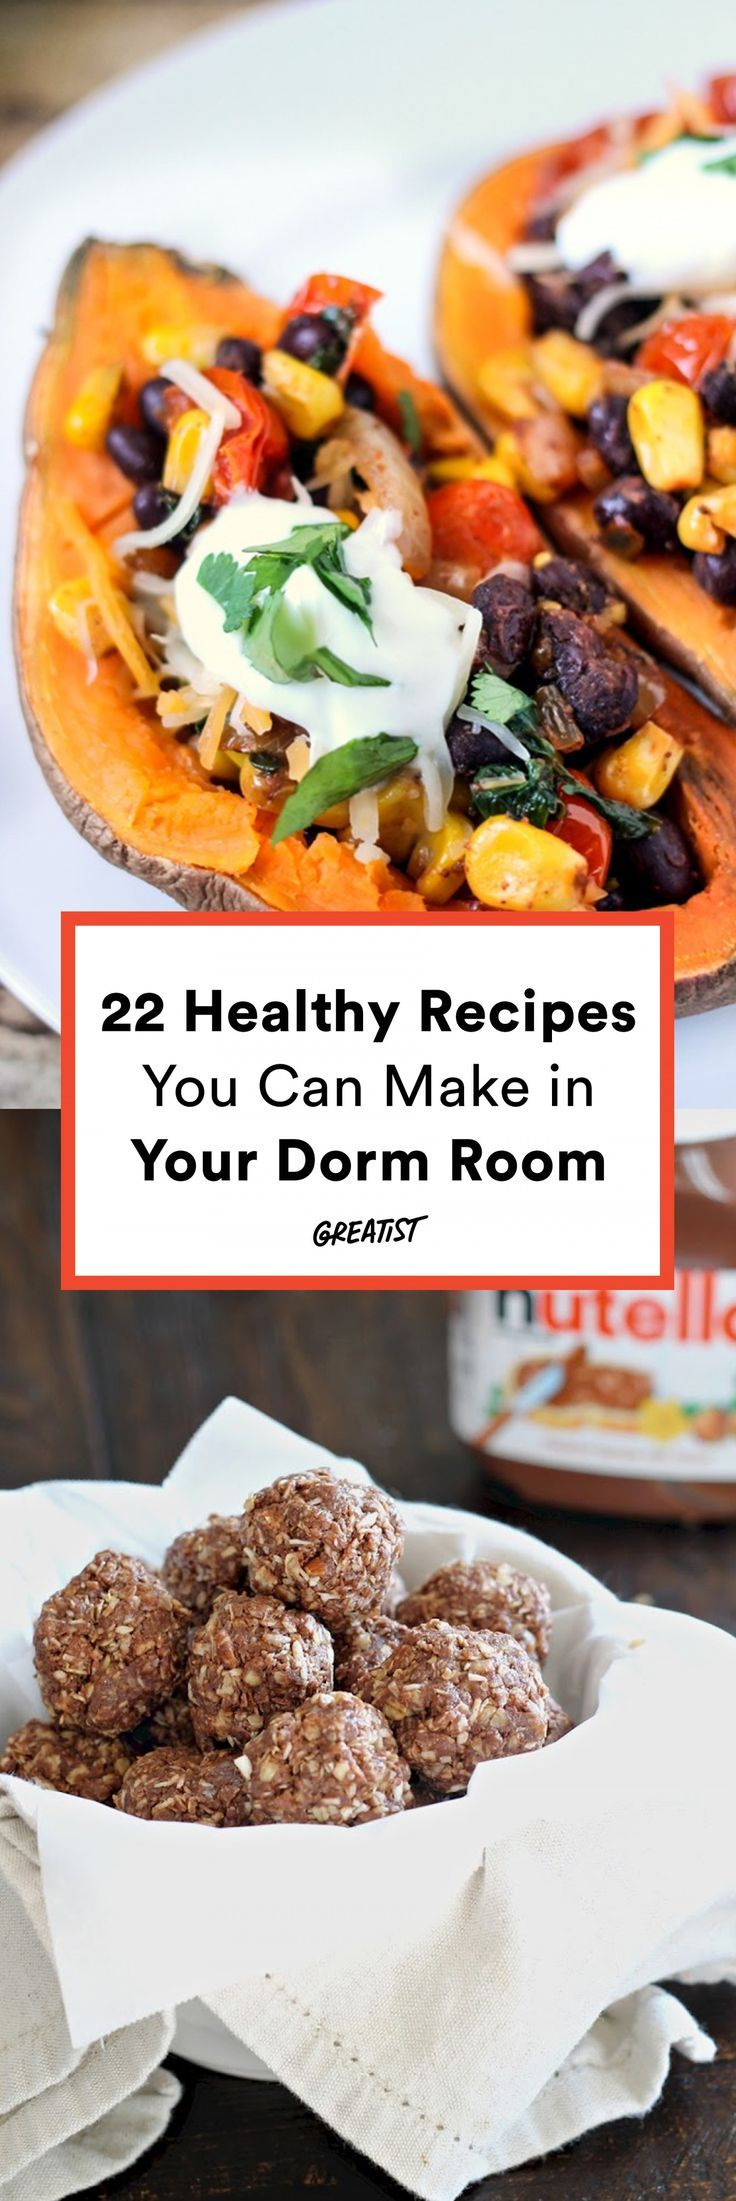 22 Healthy College Recipes You Can Make in Your Dorm Room -   16 healthy recipes For College Students schools ideas